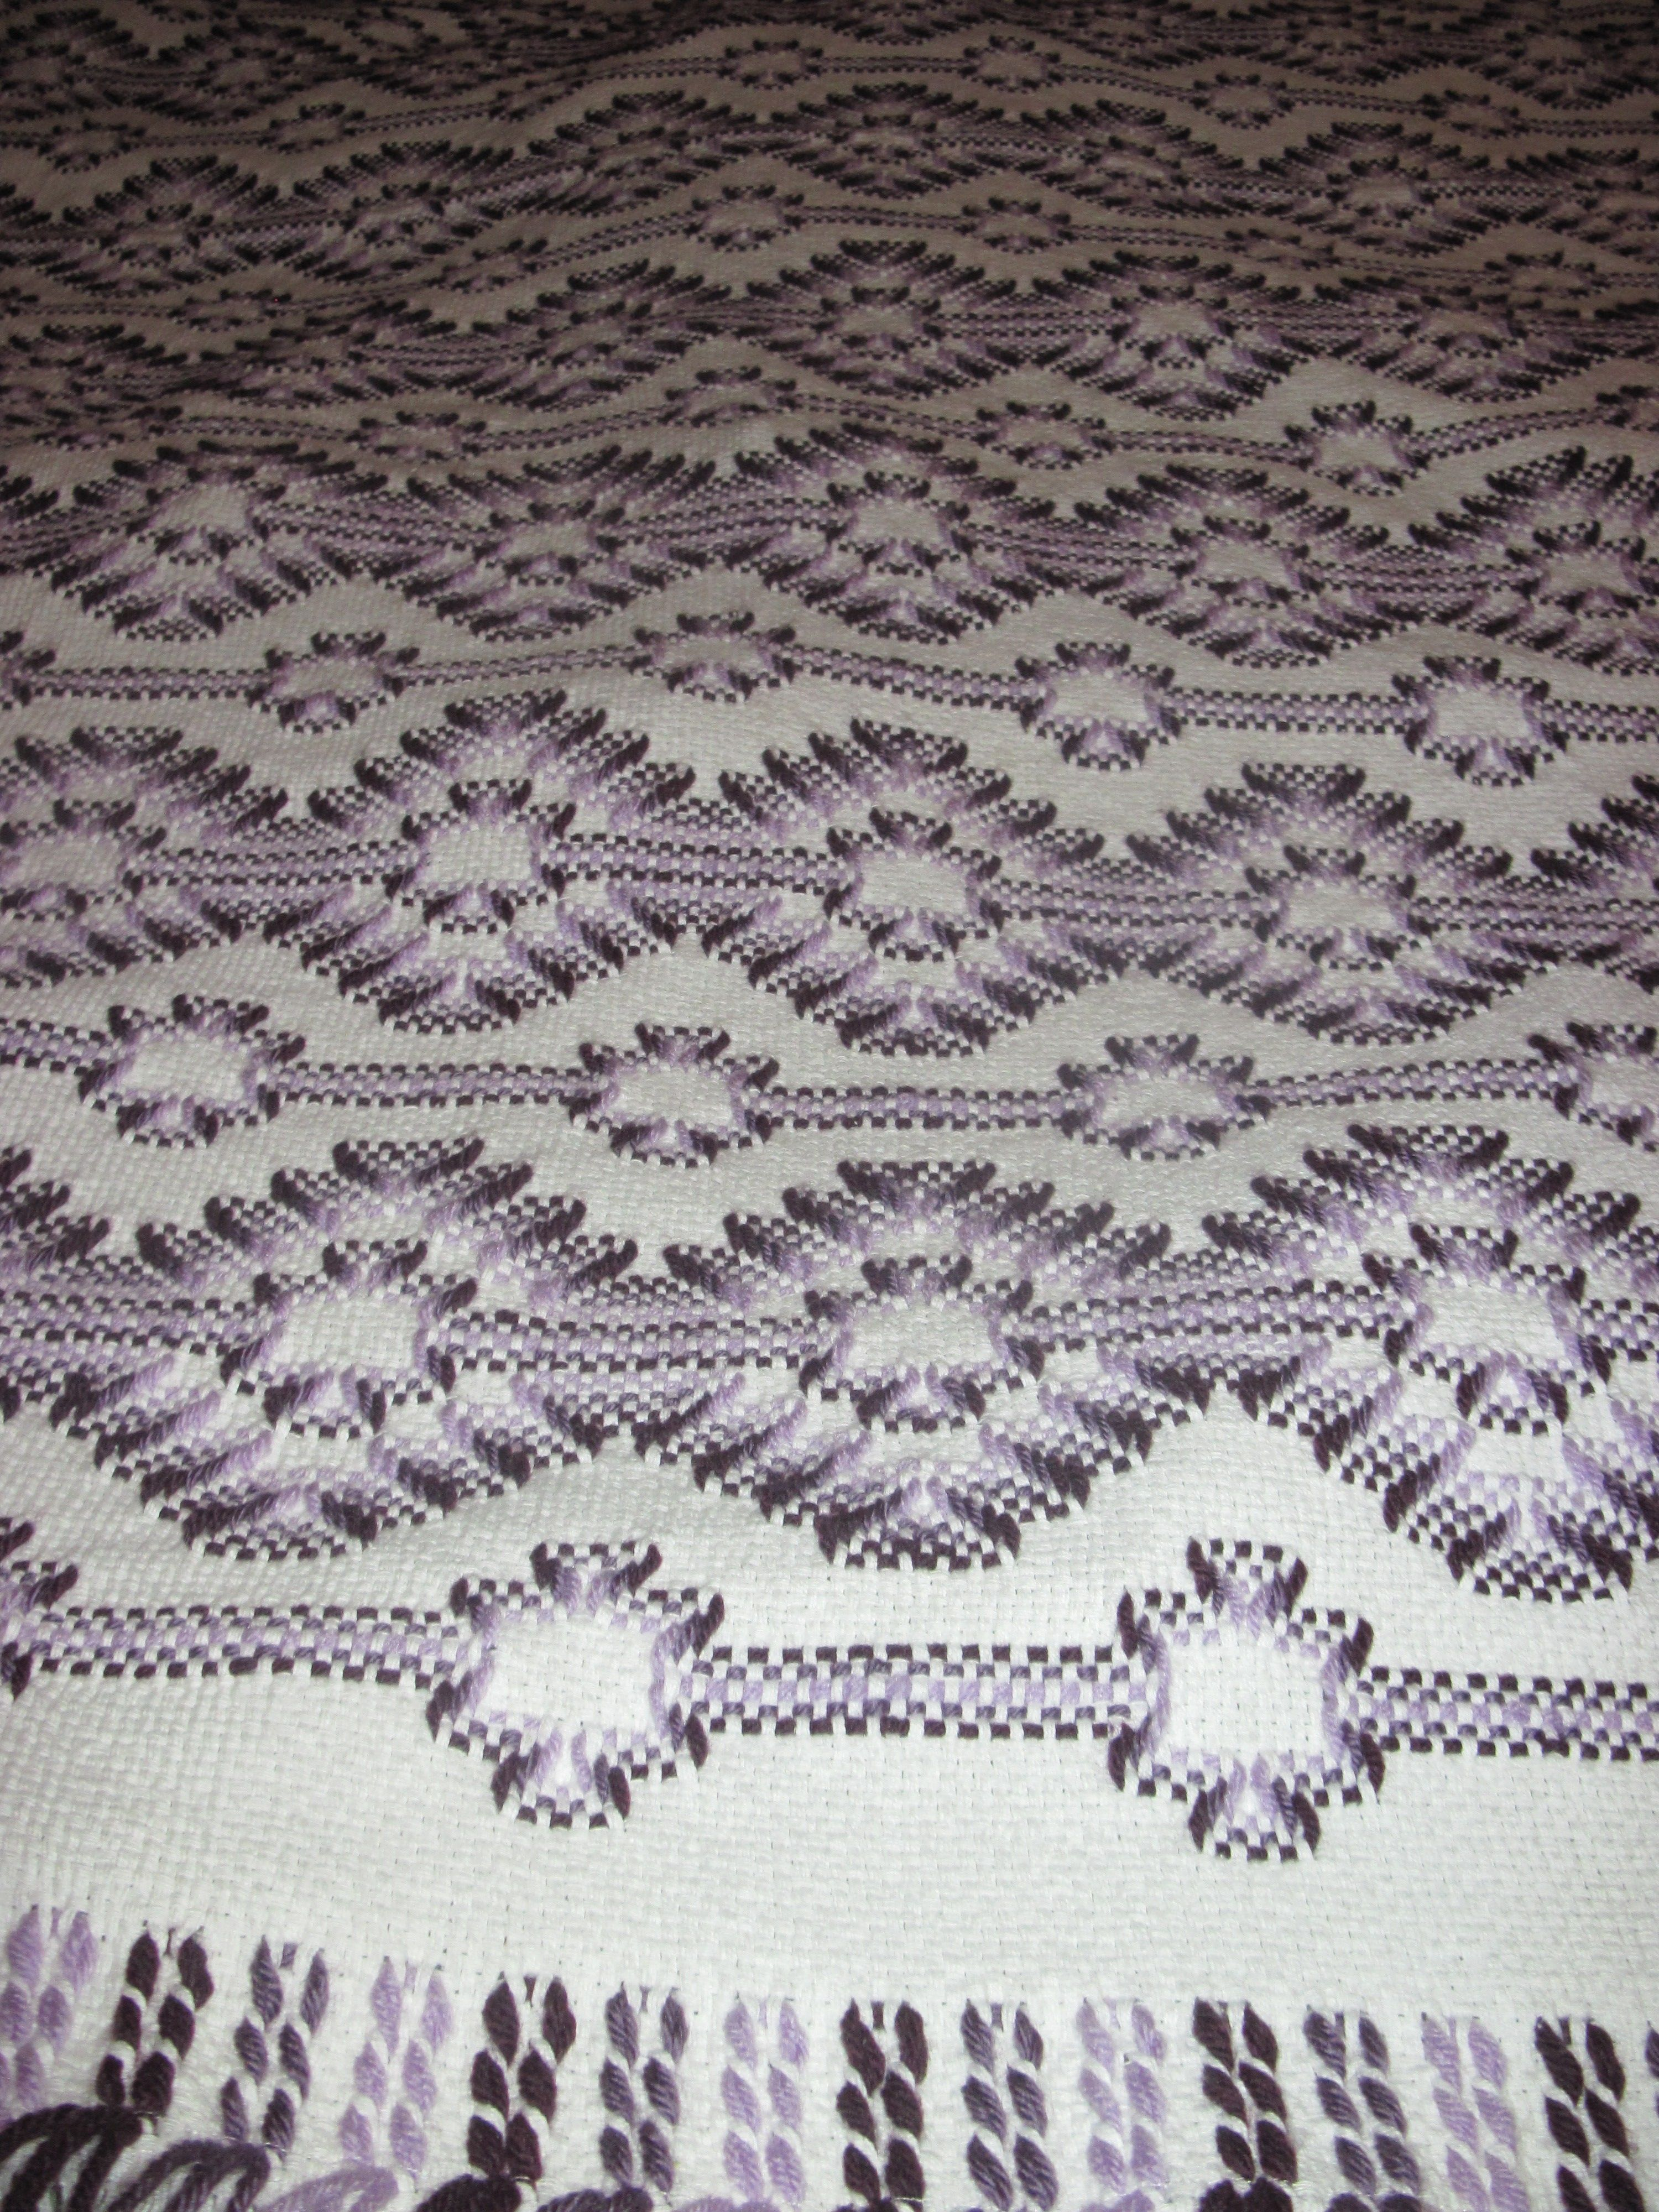 Swedish Embroidery, Blackwork Embroidery, Embroidery Thread, Weaving  Designs, Weaving Projects, Free